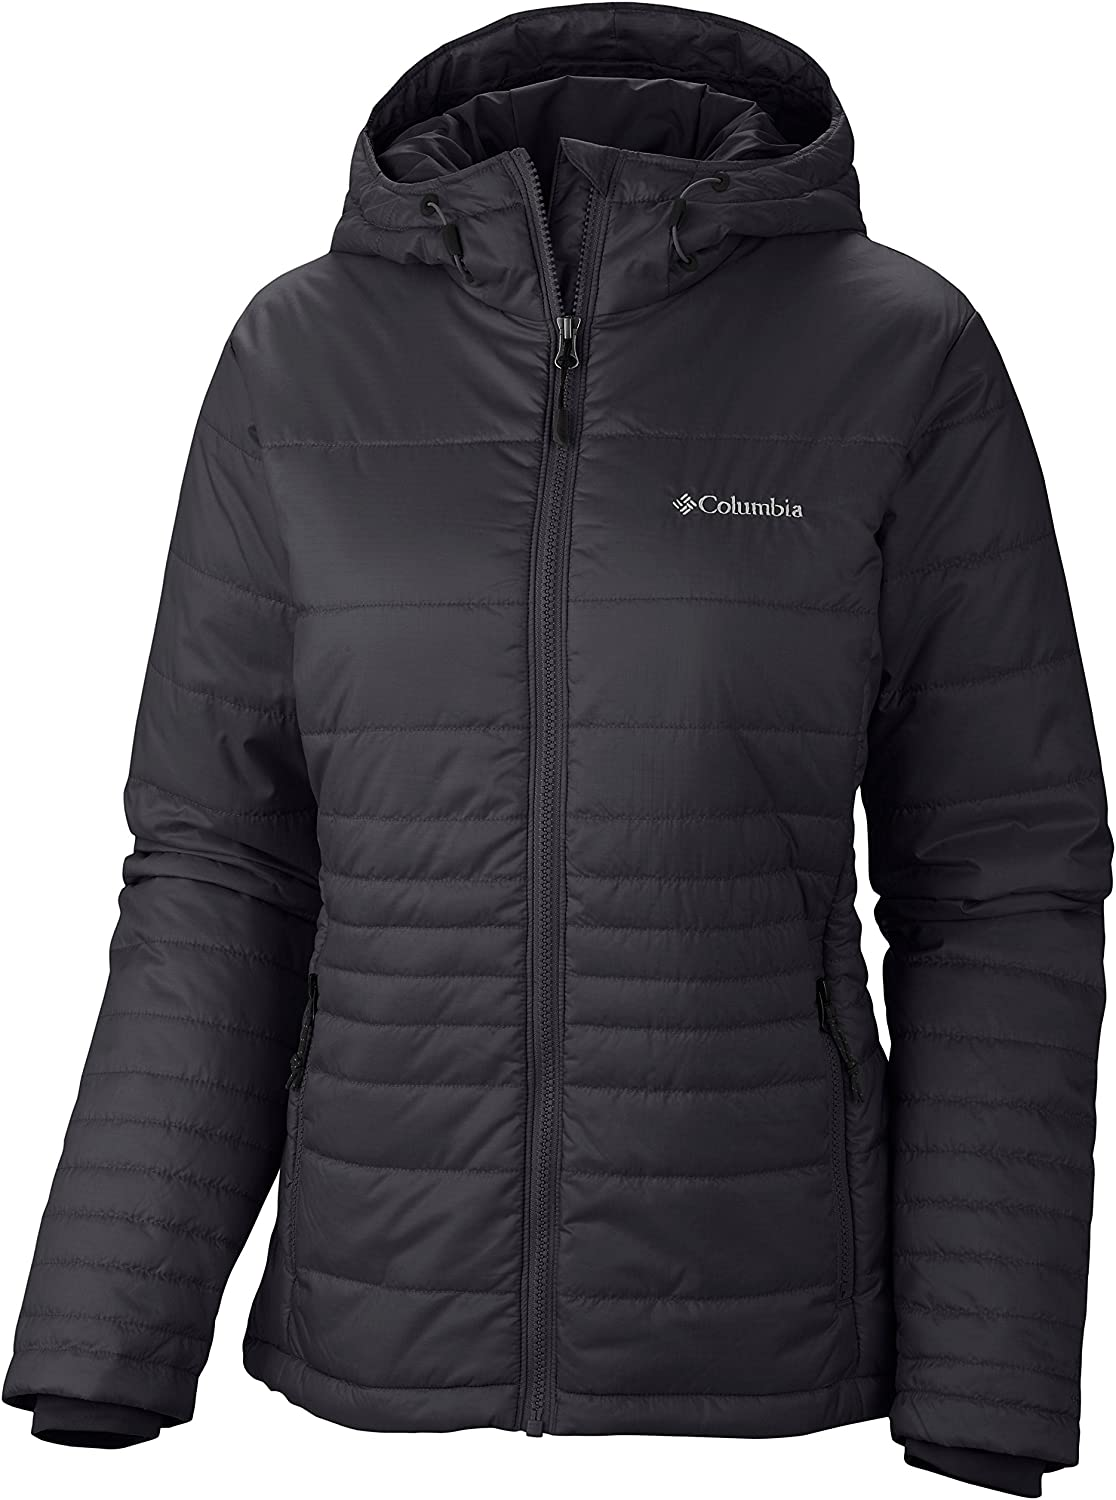 Columbia Damen Jacke Go To Hooded Jacket, Black, L, WL5435